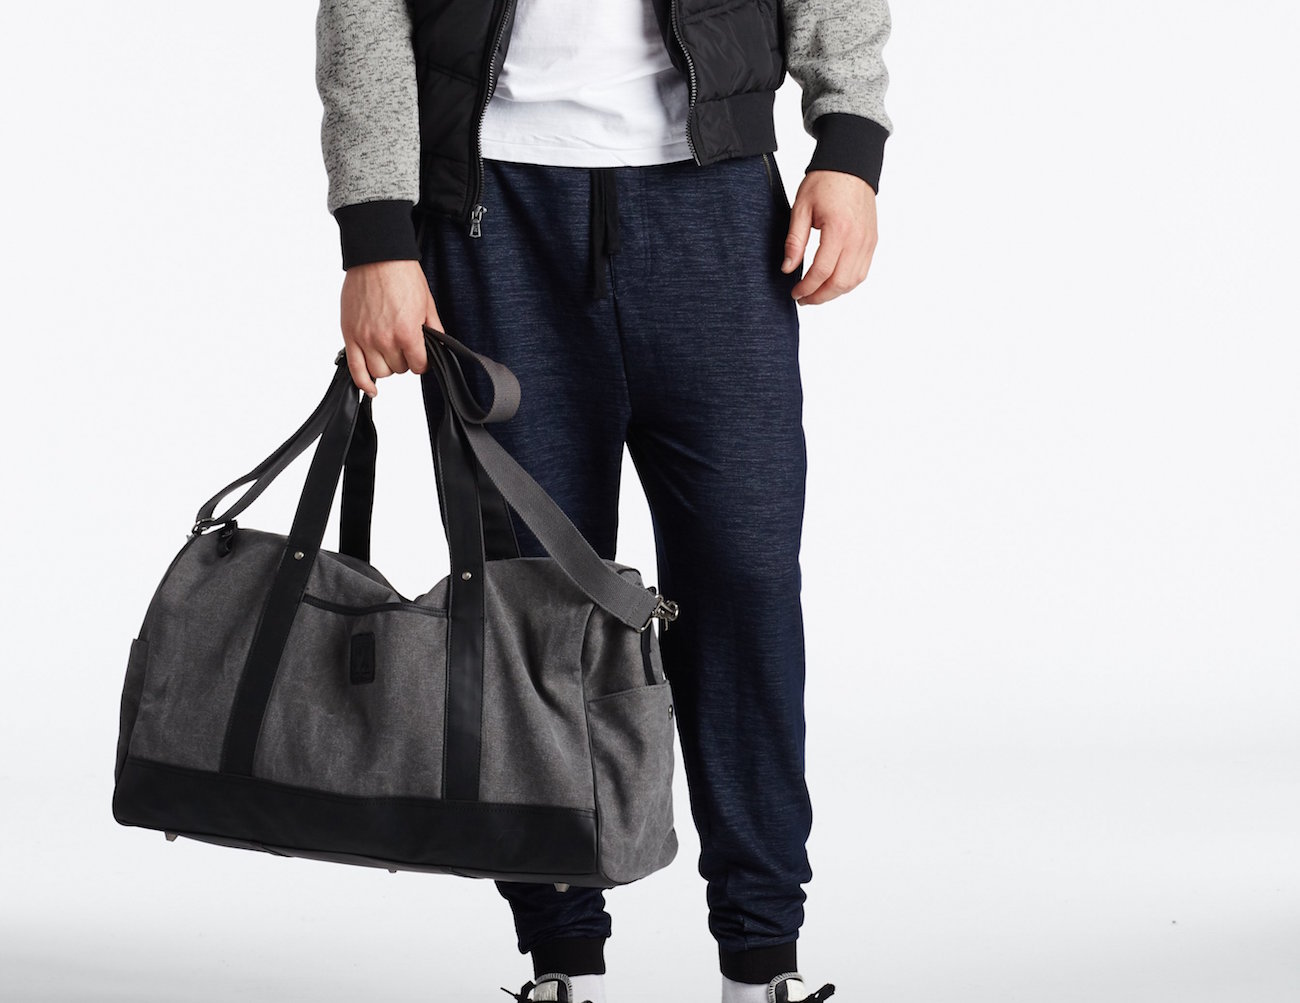 Simon Duffle Bag by PX Clothing